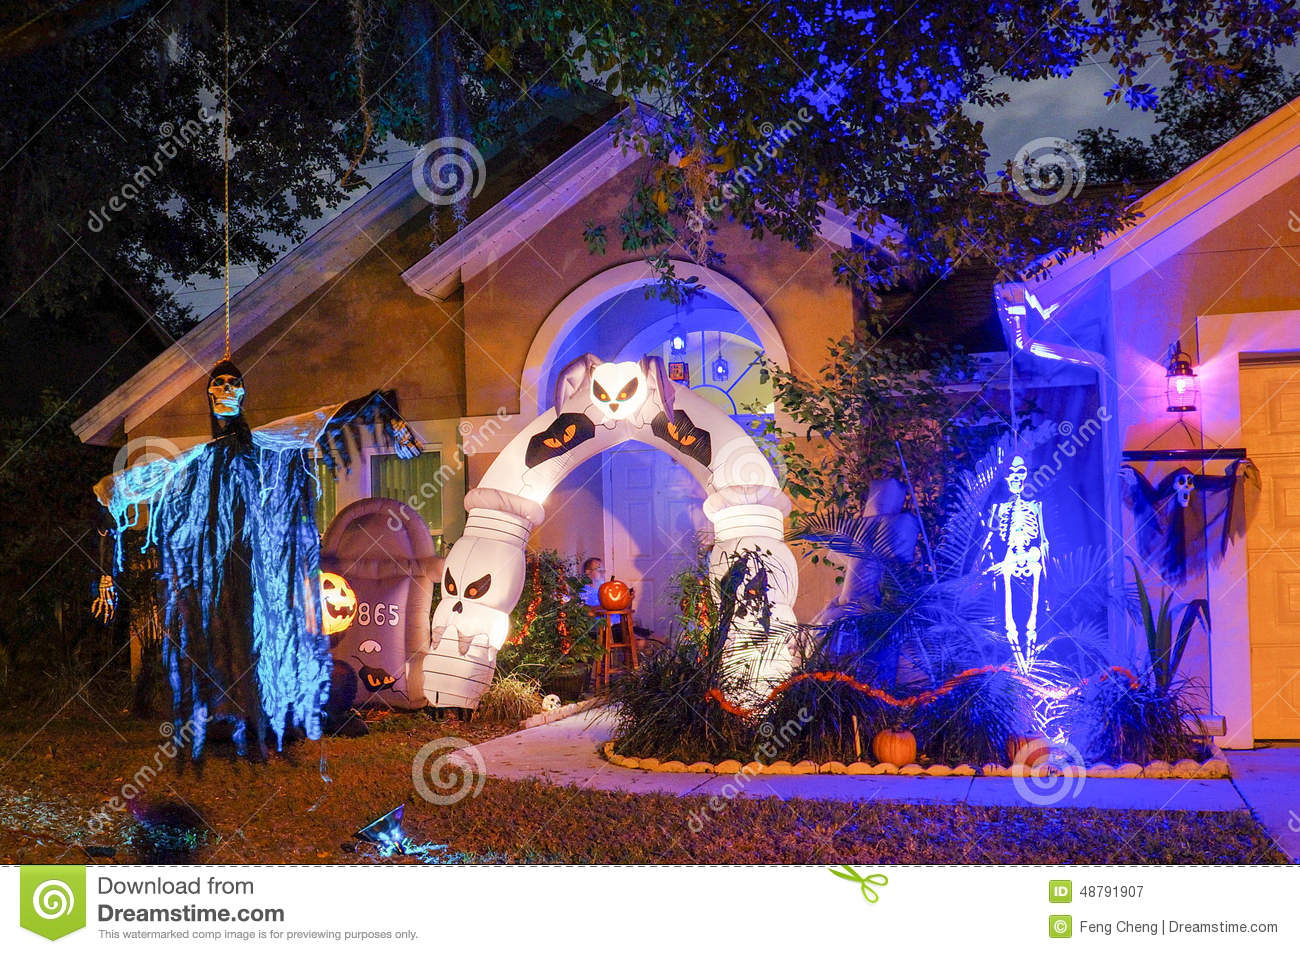 D coration halloween maison usa - Maison decoree pour halloween ...